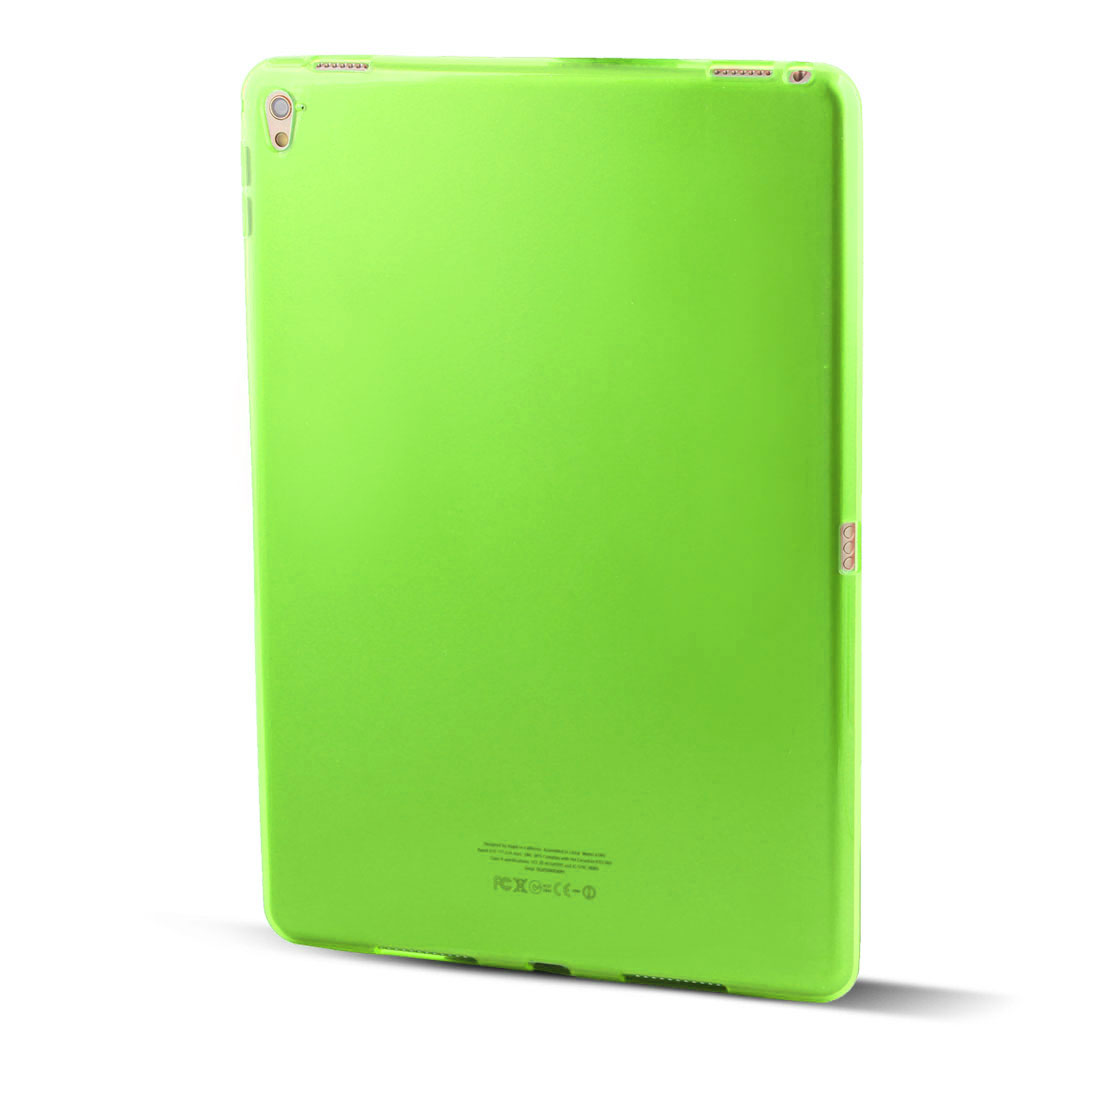 rear skin case protector shell cover clear green for ipad pro 9 7 inch tanga. Black Bedroom Furniture Sets. Home Design Ideas